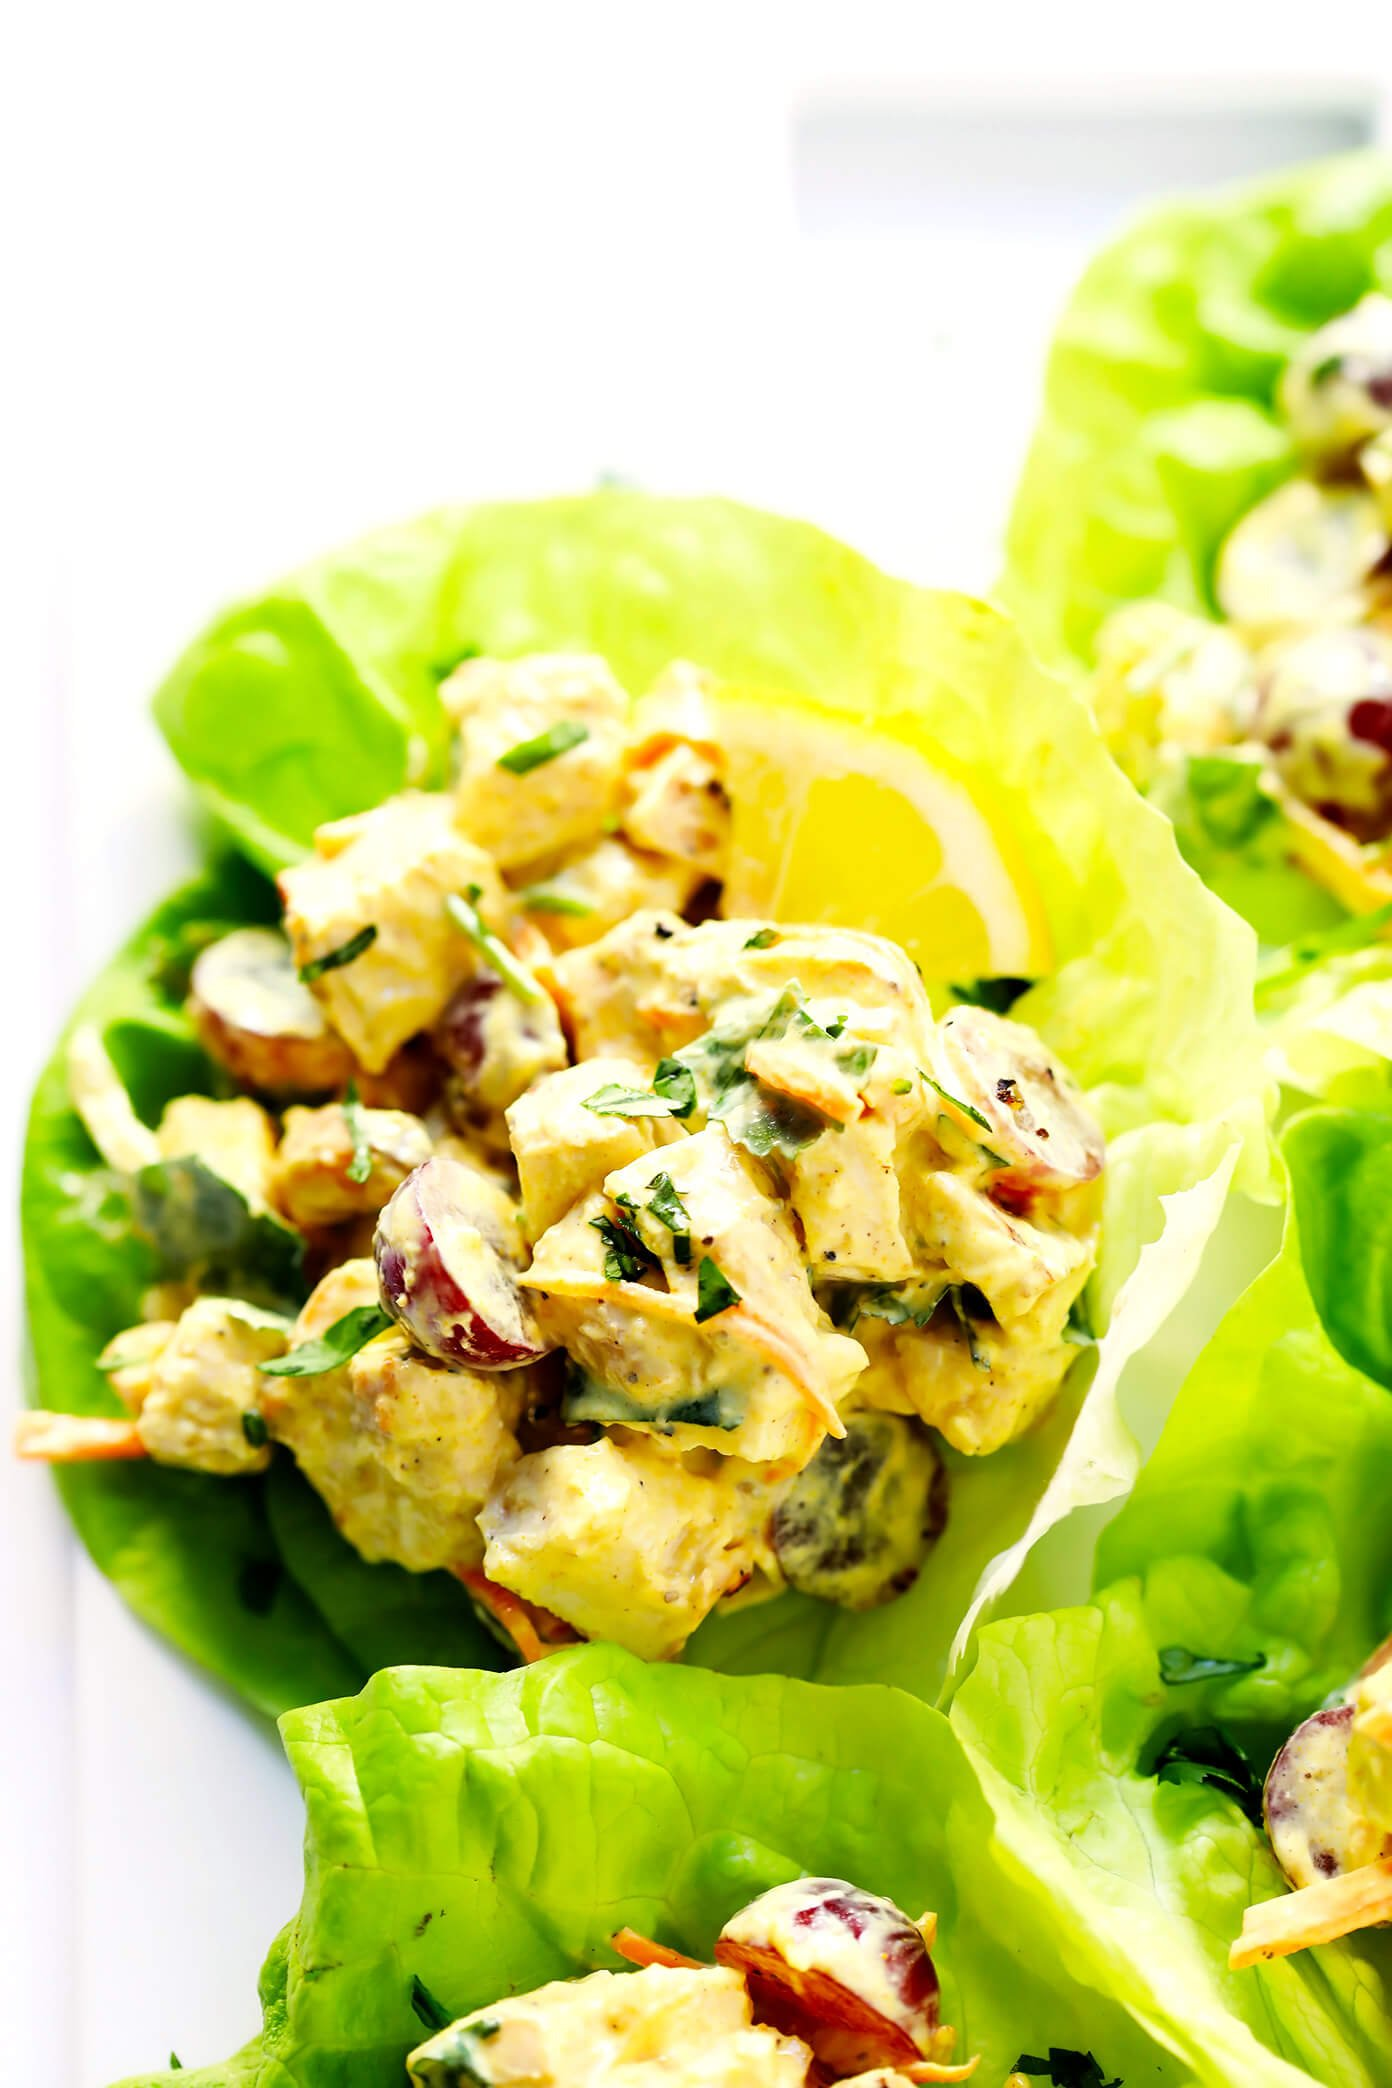 LOVE this Healthy Curried Chicken Salad recipe!  It's fast and easy to make, made with a delicious Curried Greek Yogurt sauce, naturally gluten-free, and crazy good. Perfect for meal planning, and tastes delicious in a sandwich, wrap, lettuce cups...you name it! | Gimme Some Oven #chickensalad #glutenfree #lettucewraps #chickencurry